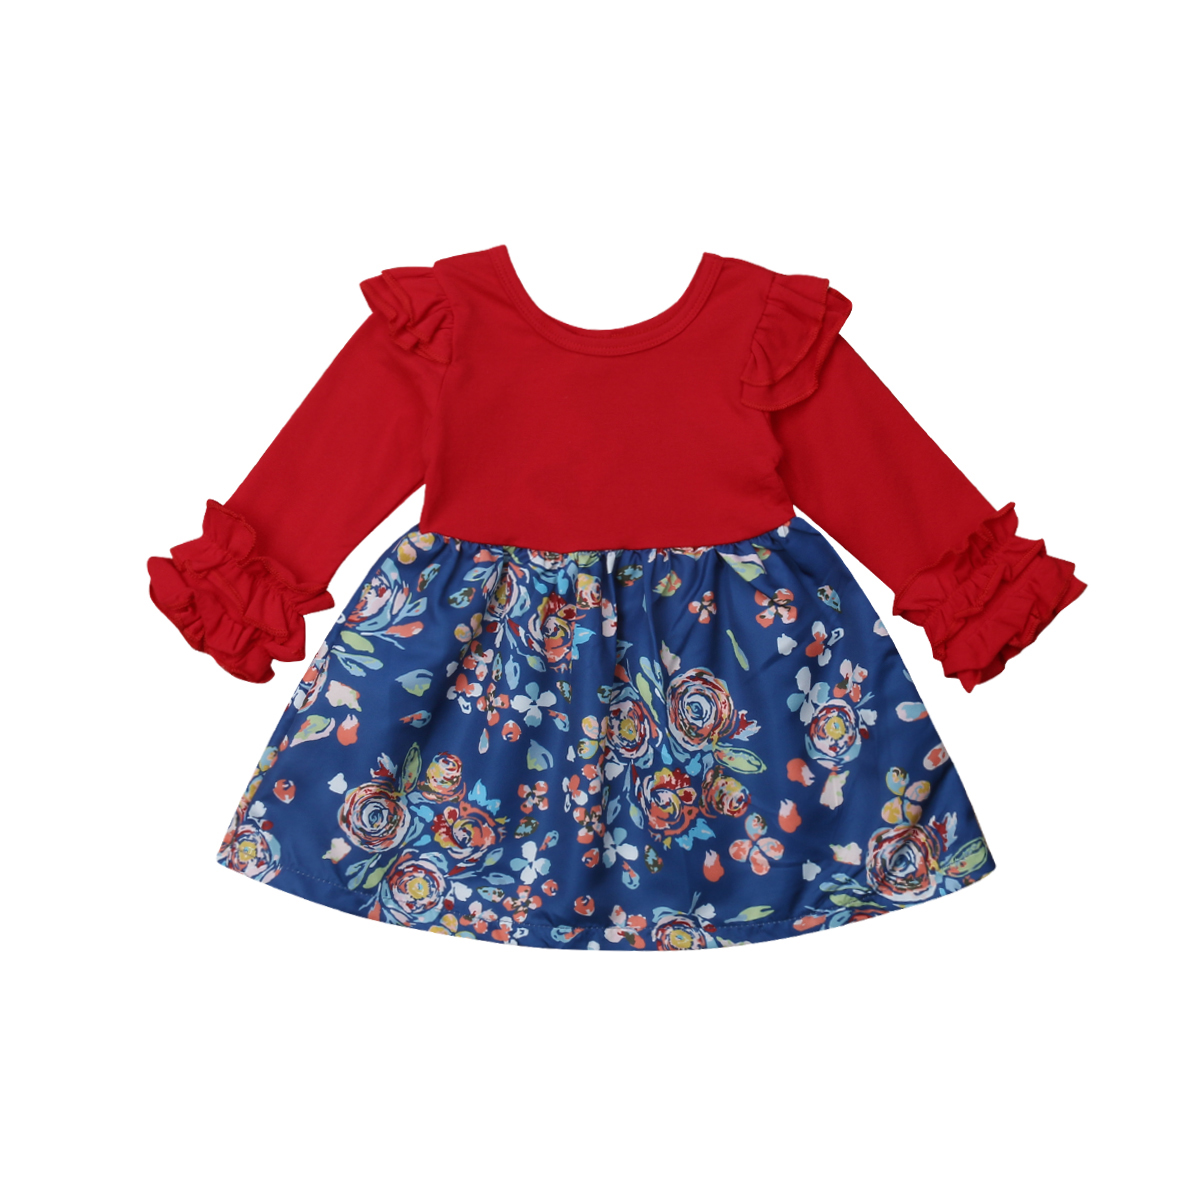 Cute Newborn Kids Baby Girls Ruffle Floral Long Sleeves Dress Party Pageant Princess Dress Clothes